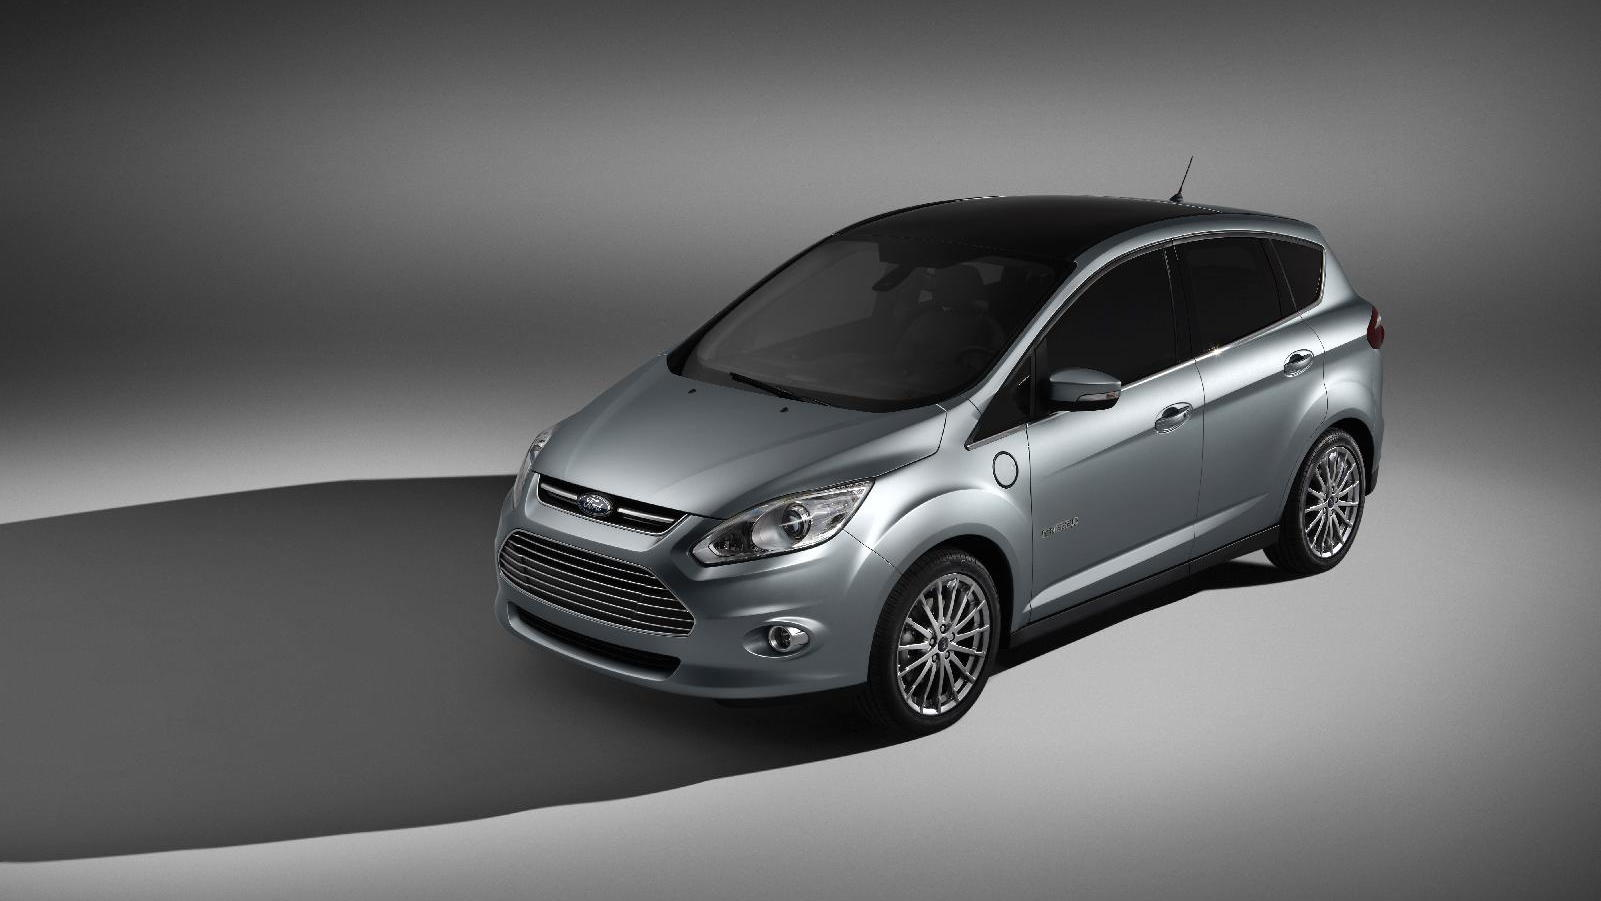 Ford C-Max Energi, first revealed at the 2011 Detroit Auto Show